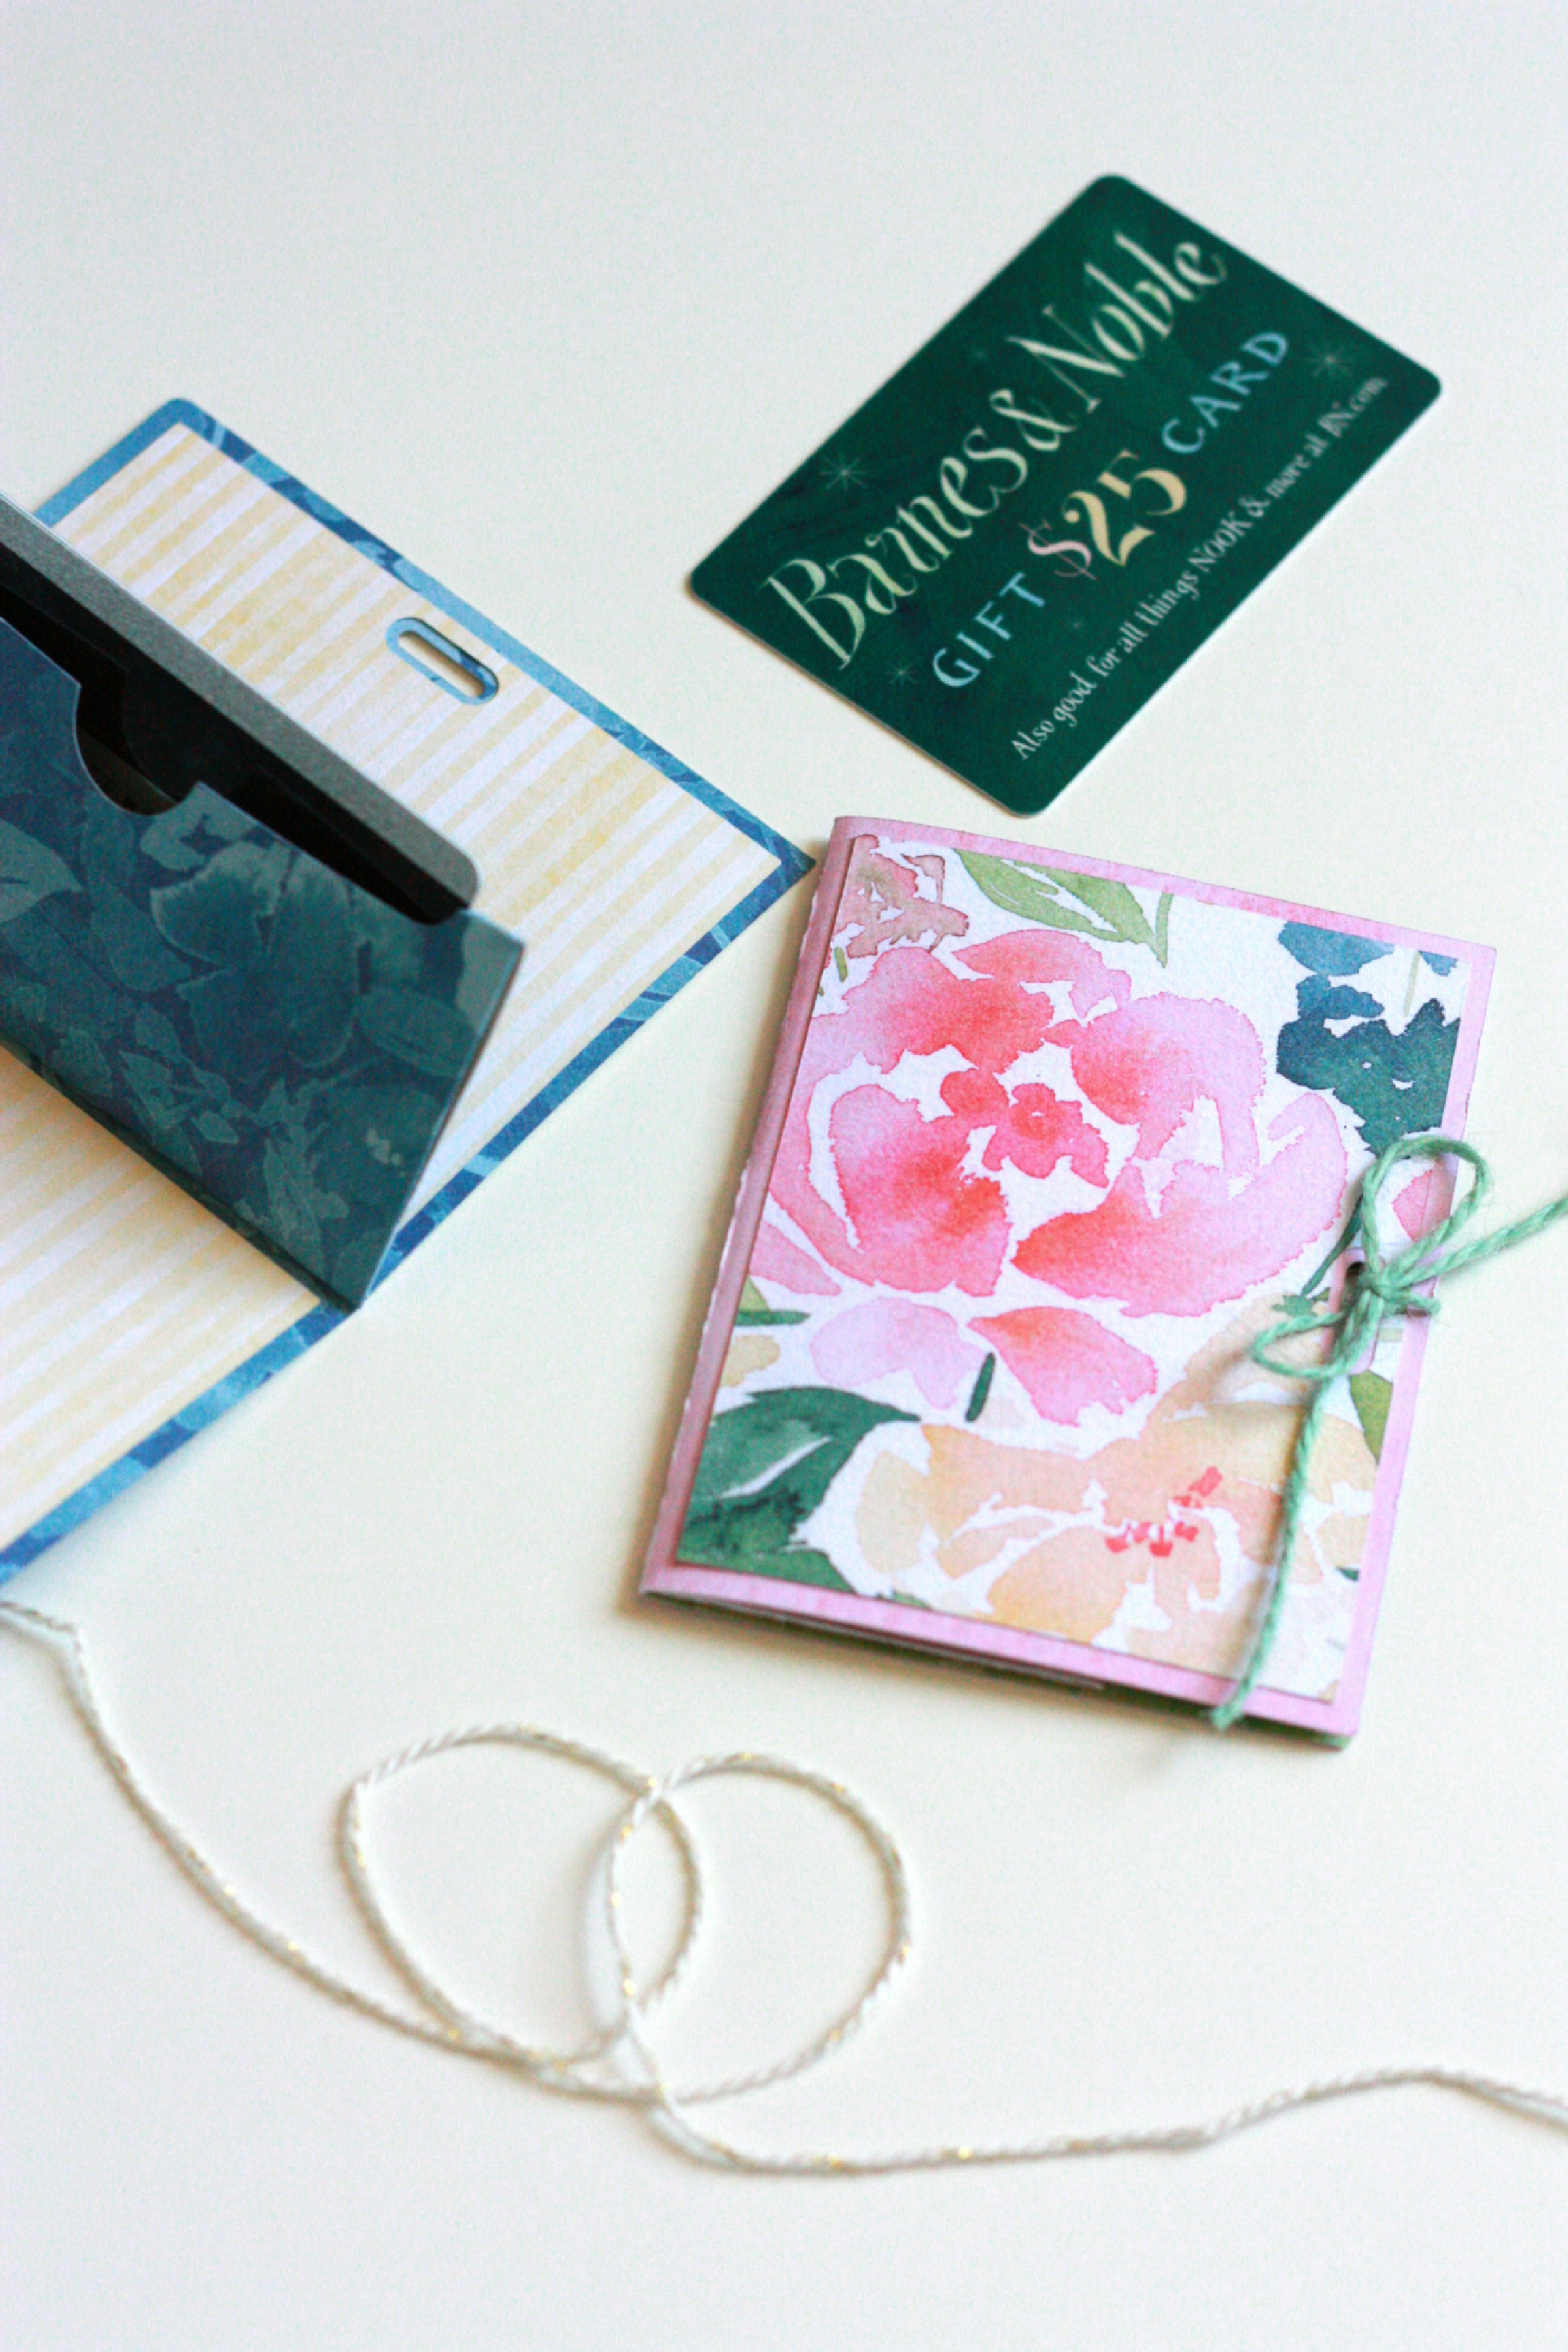 Diy Gift Card Holder With Cricut Explore Air 2 Everyday Jenny